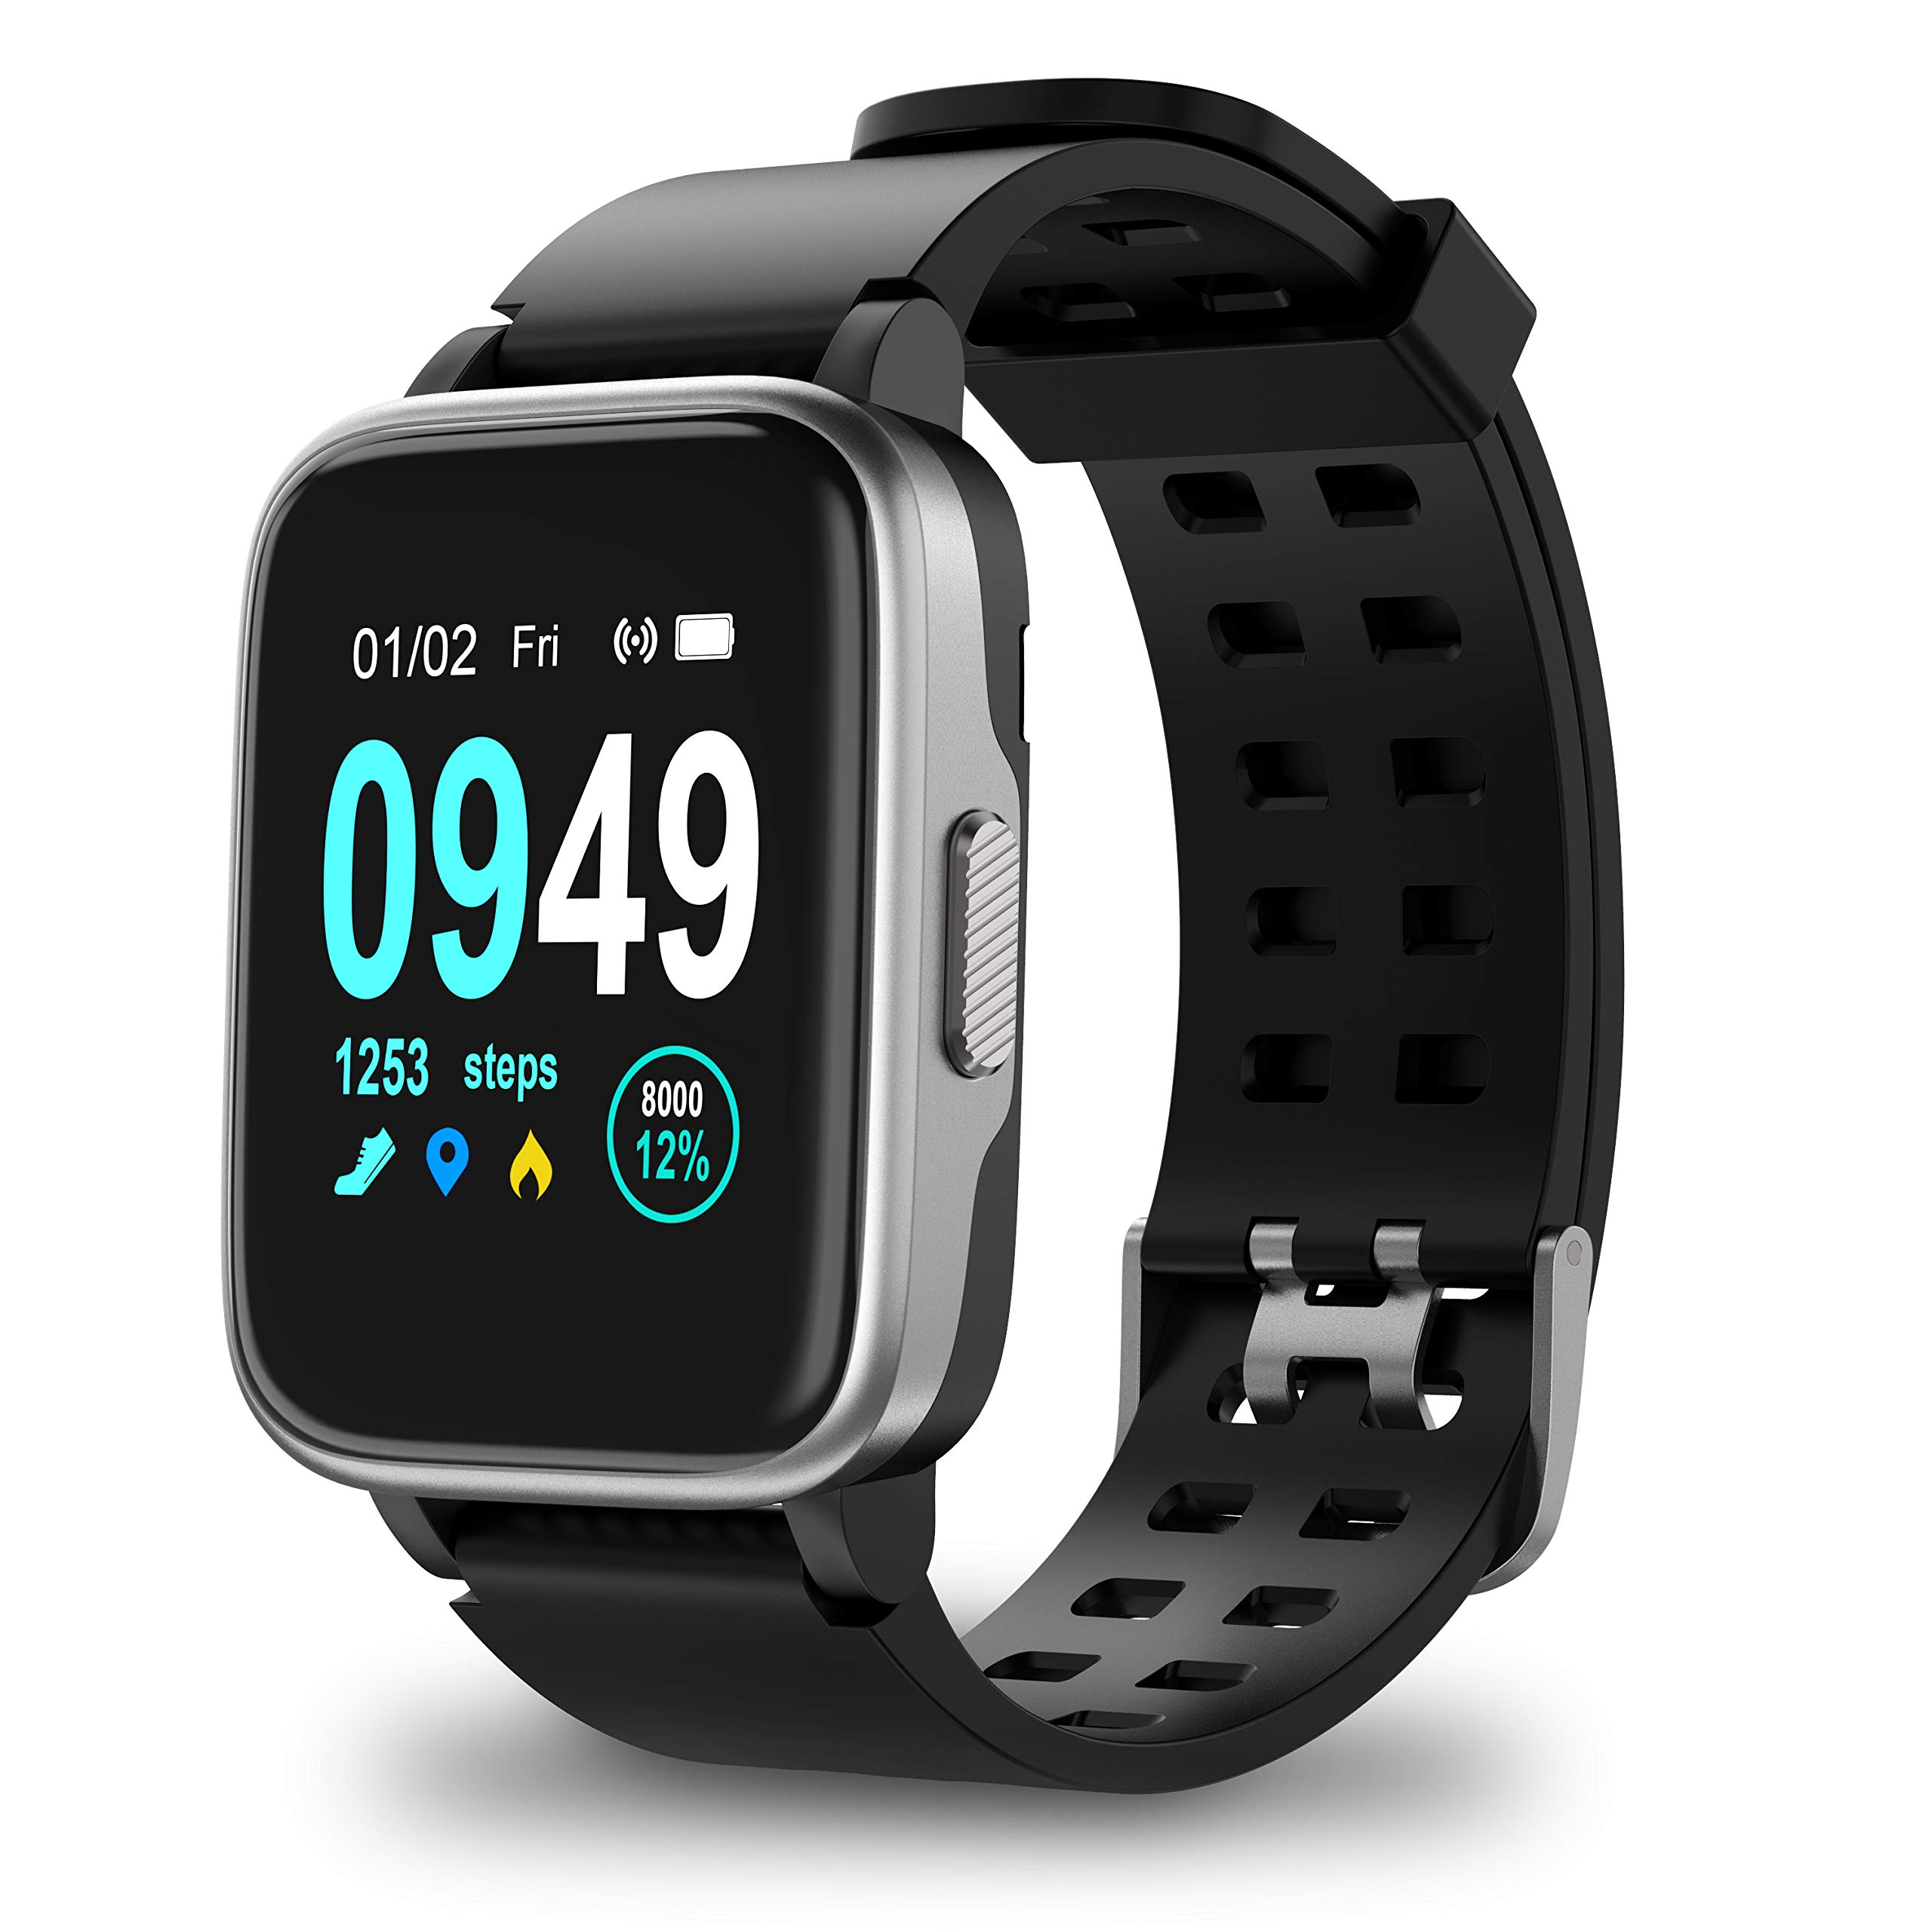 Updated 2019 Version Smart Watch for Android iOS Phone, Activity Fitness Tracker Watches Health Exercise Smartwatch with Heart Rate, Sleep Monitor Compatible with Samsung Apple iPhone for Men Women by SKYGRAND